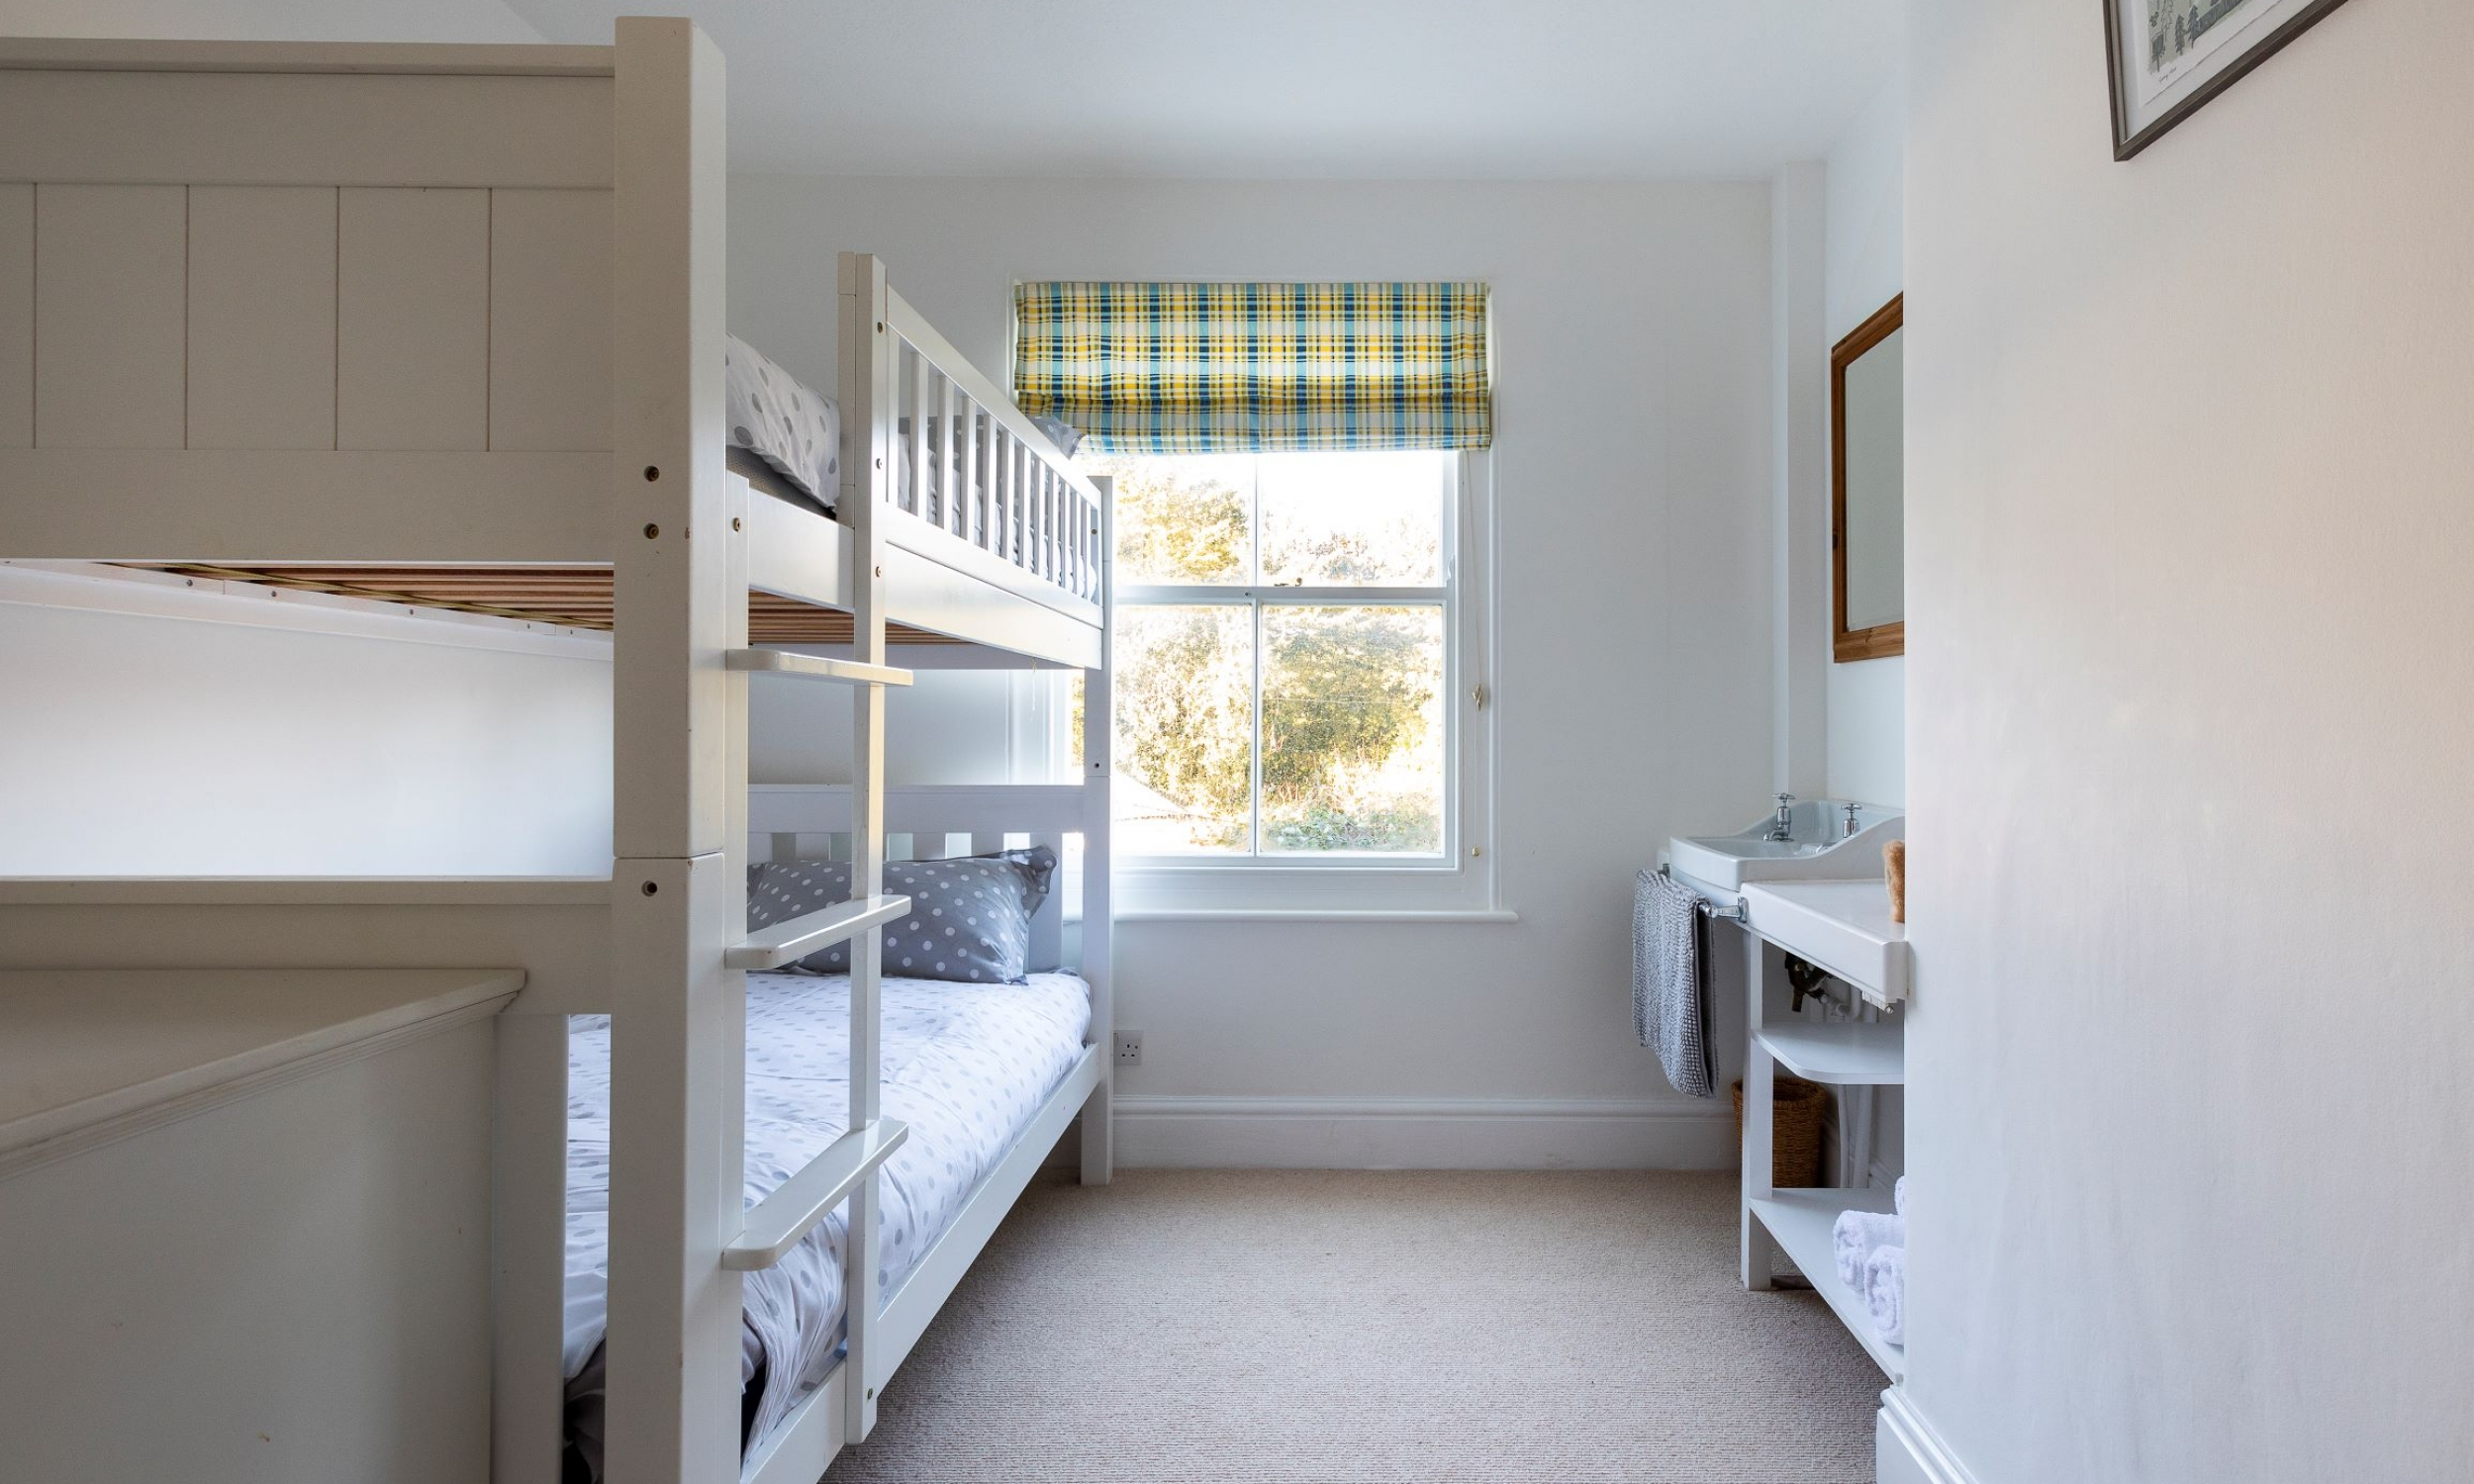 Bedroom three full size bunk beds